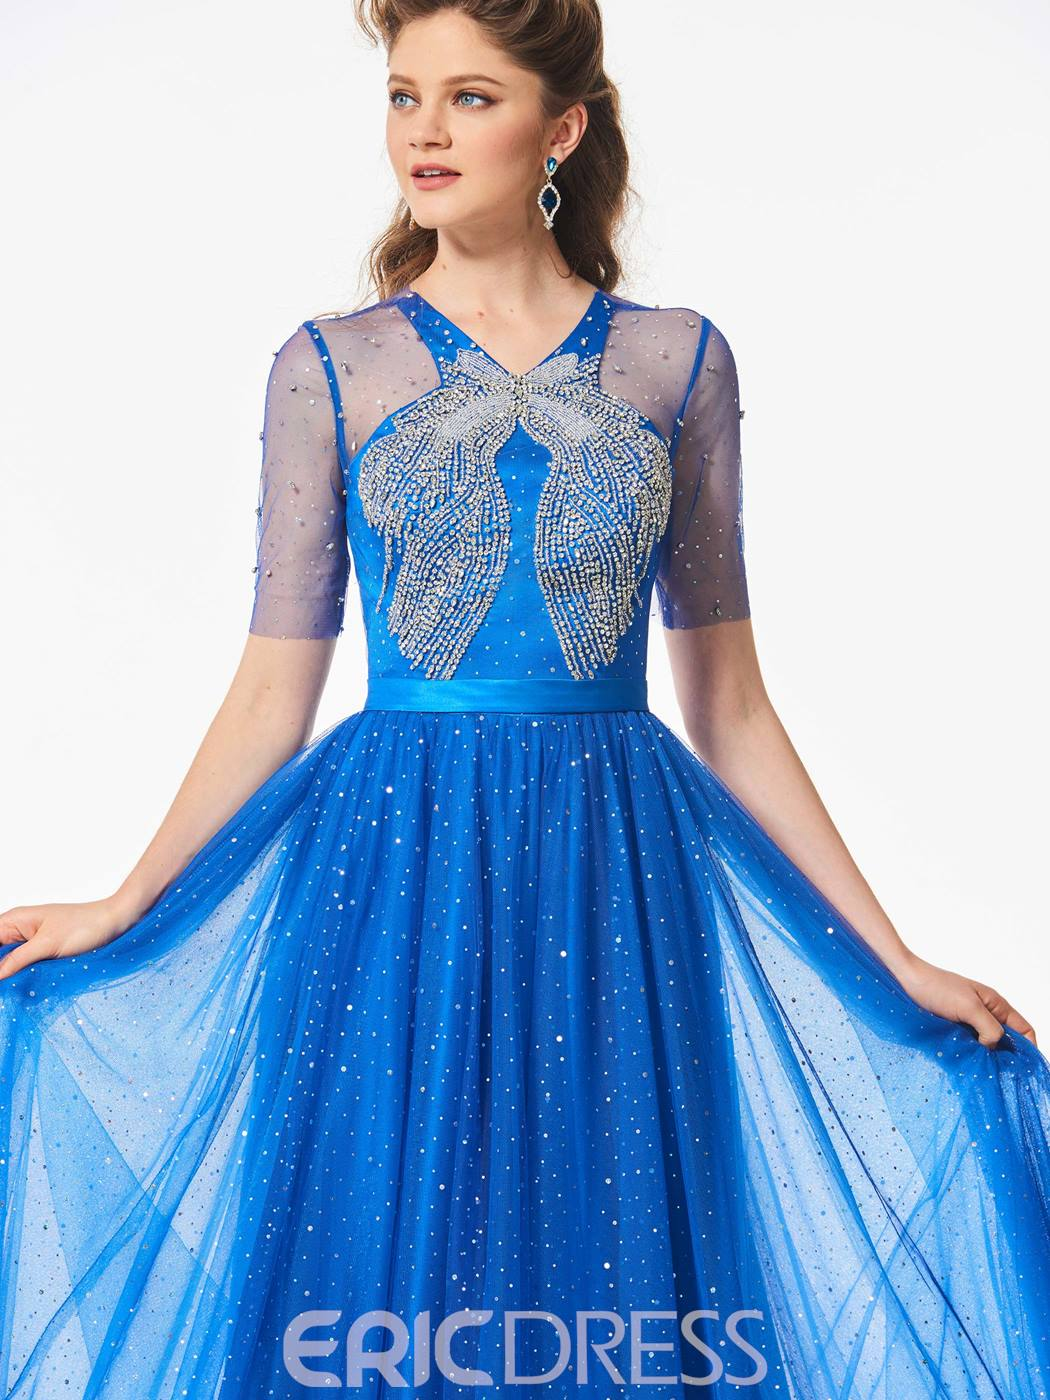 Ericdress Delicate A Line Short Sleeve Beaded Long Prom Dress